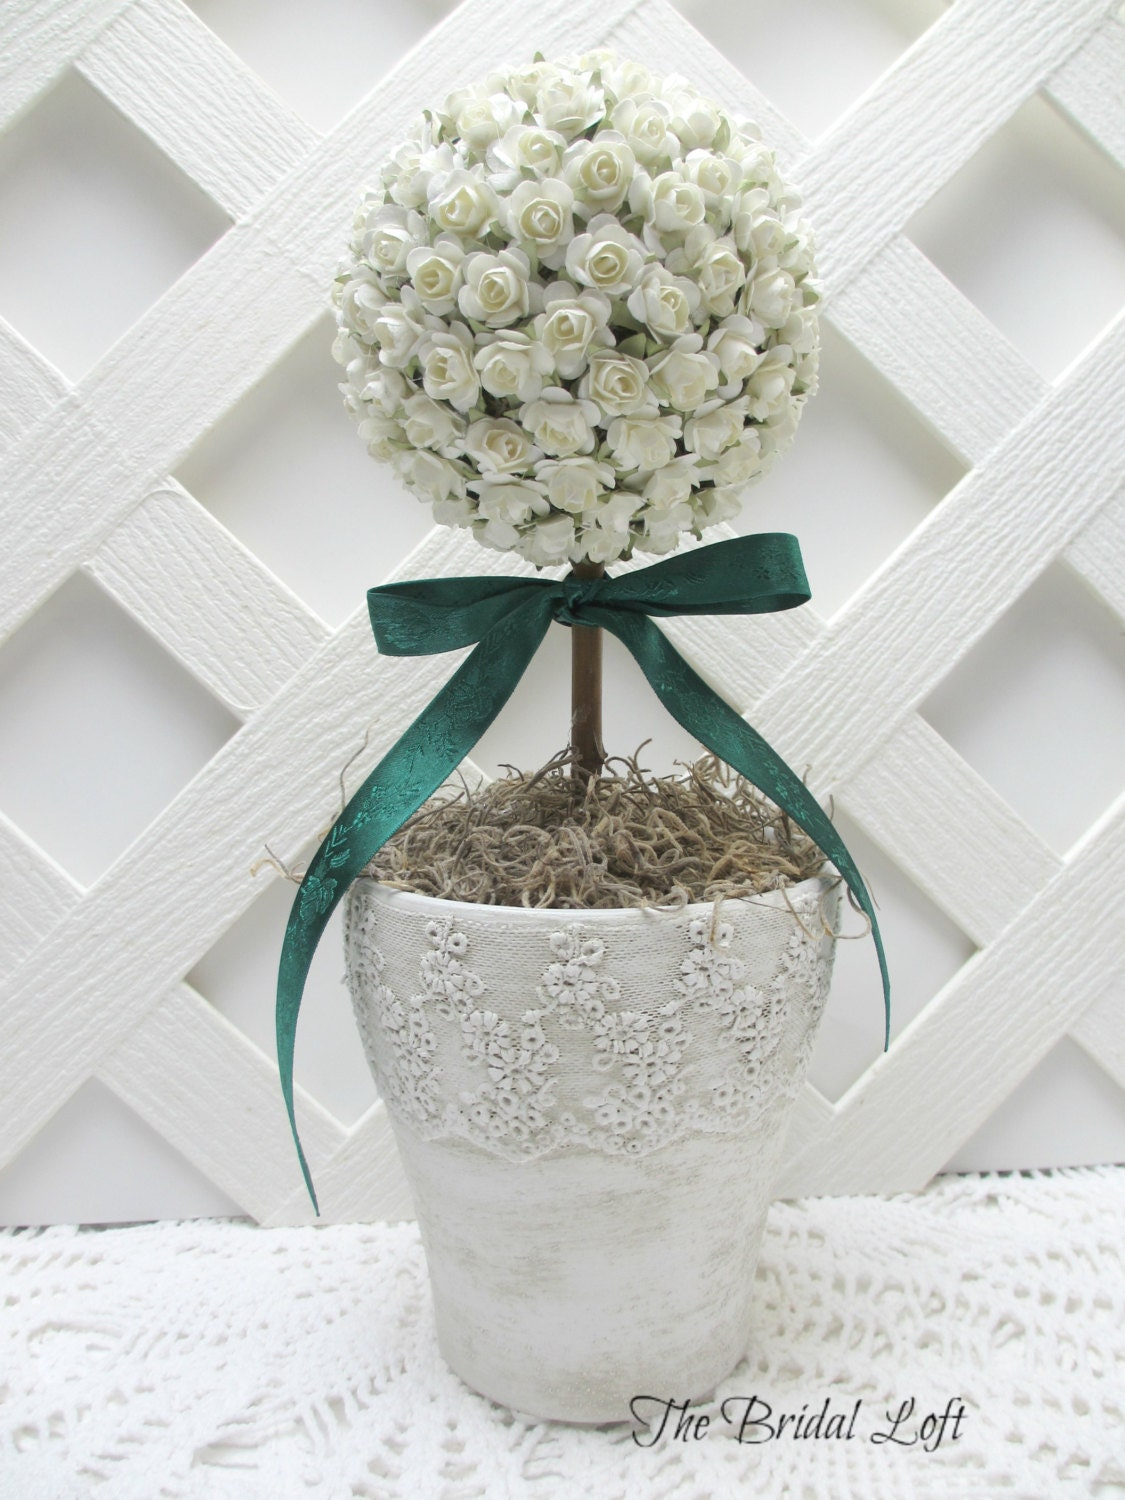 Rose topiary in lace ceramic pot table centerpiece by